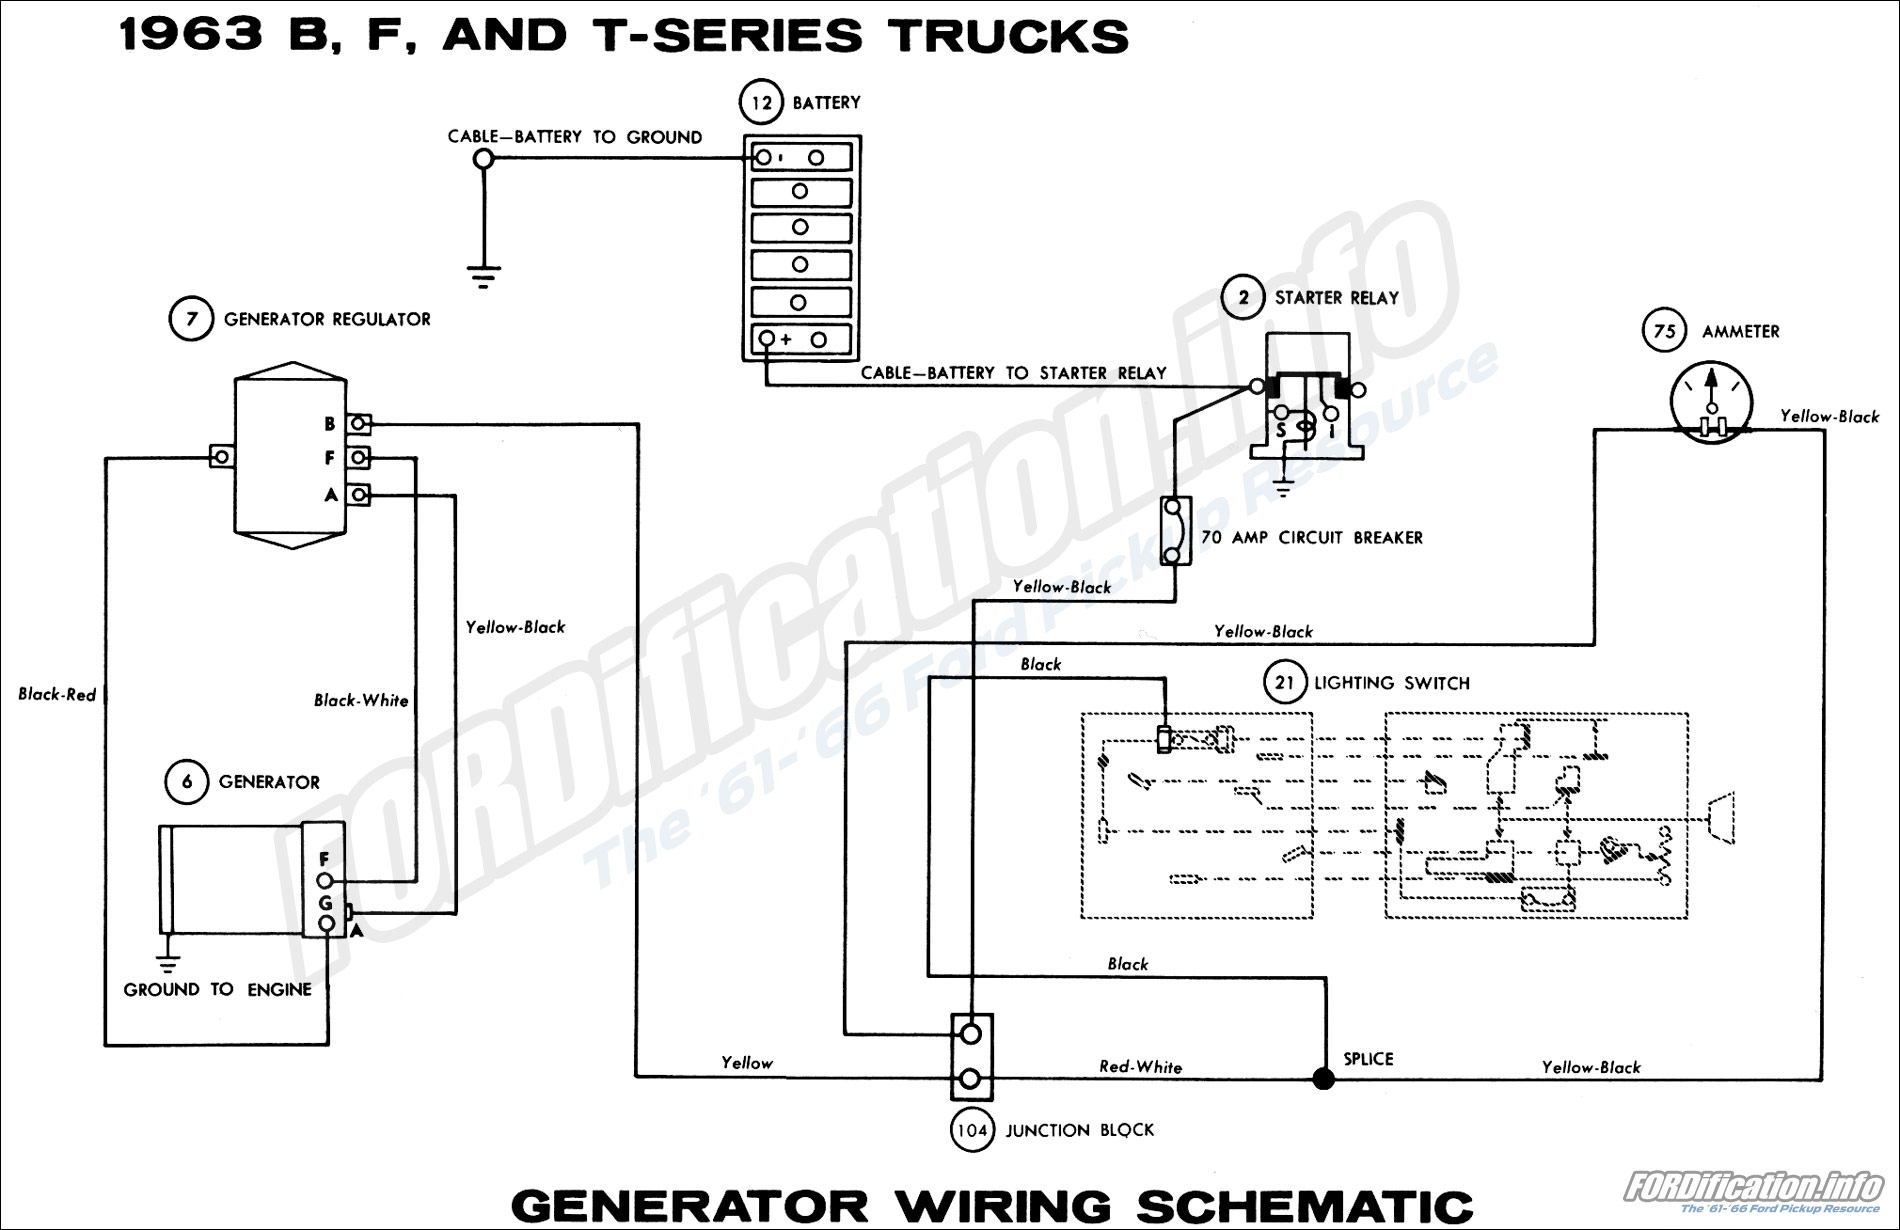 1963 Ford Truck Wiring Diagrams The 61 66 F250 Alternator Diagram B F And T Series Trucks Generator Schematic